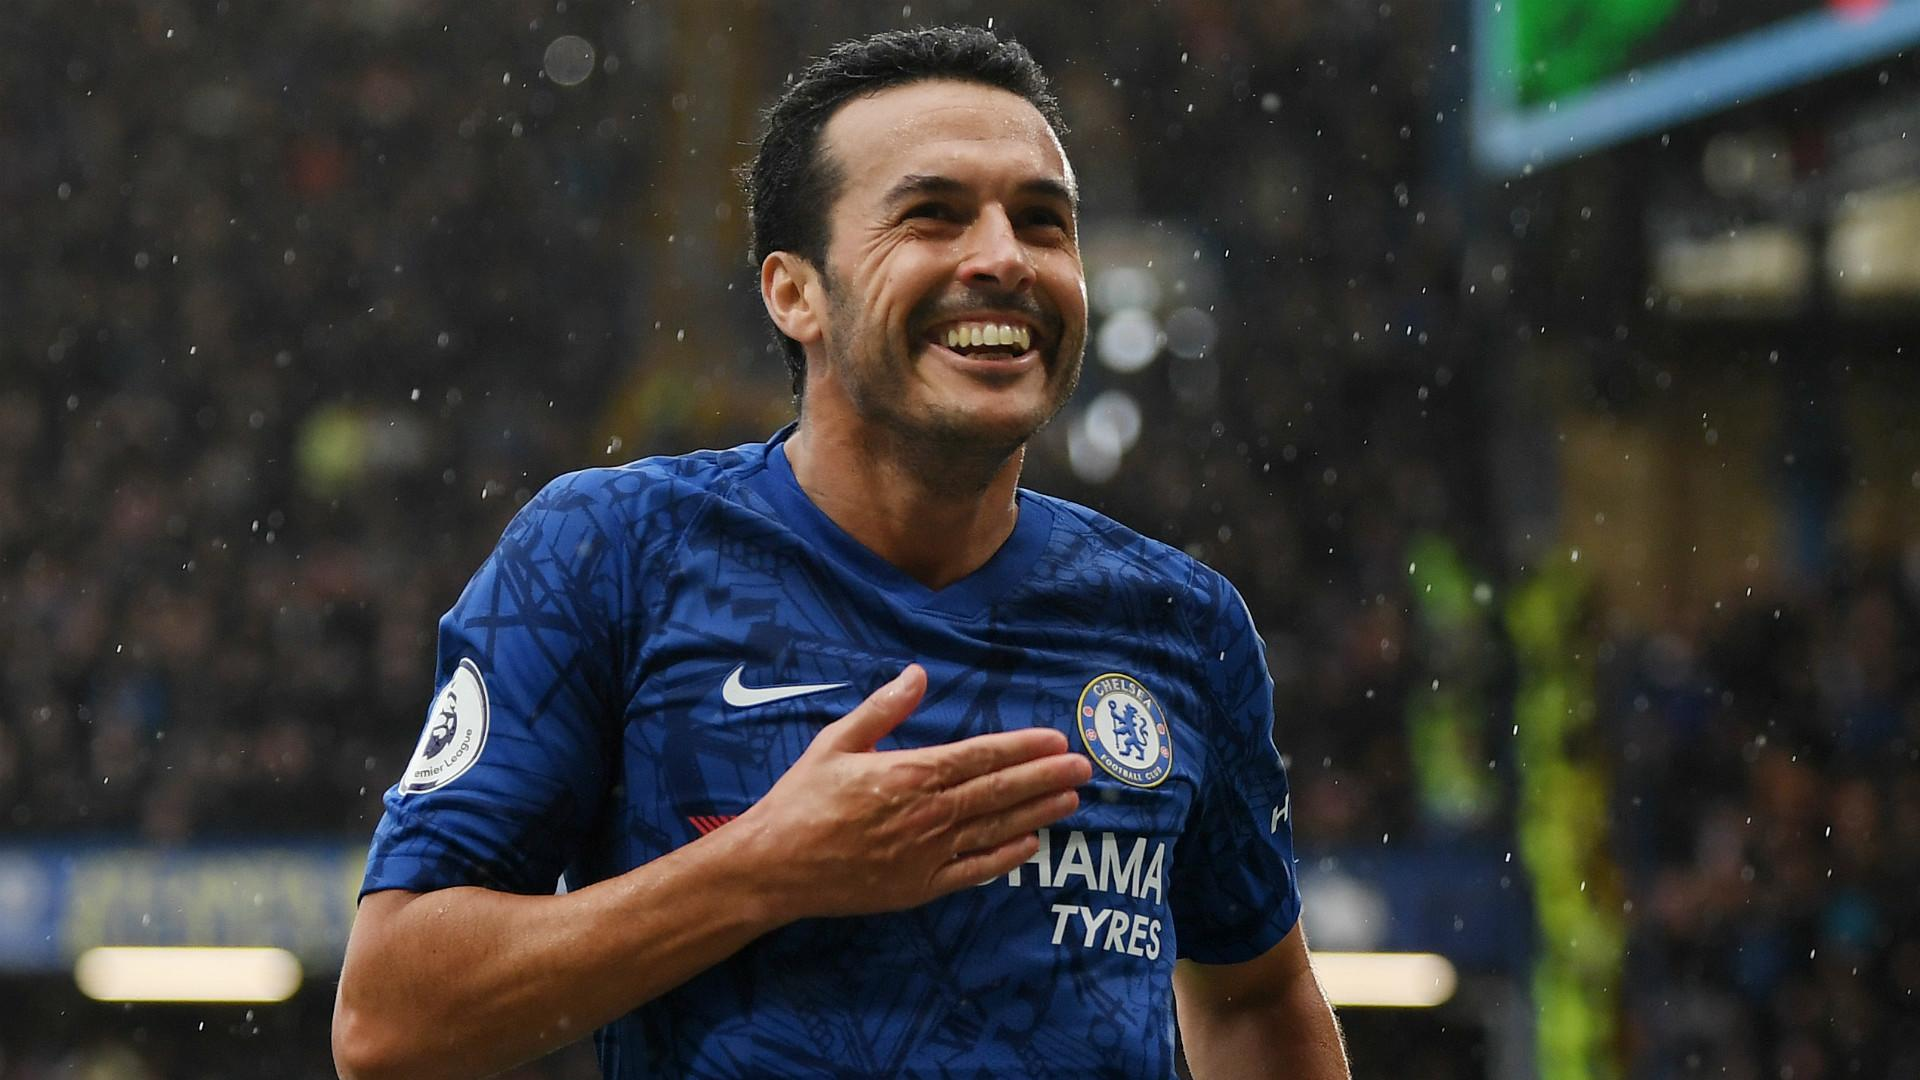 'My wish is to stay at Chelsea'